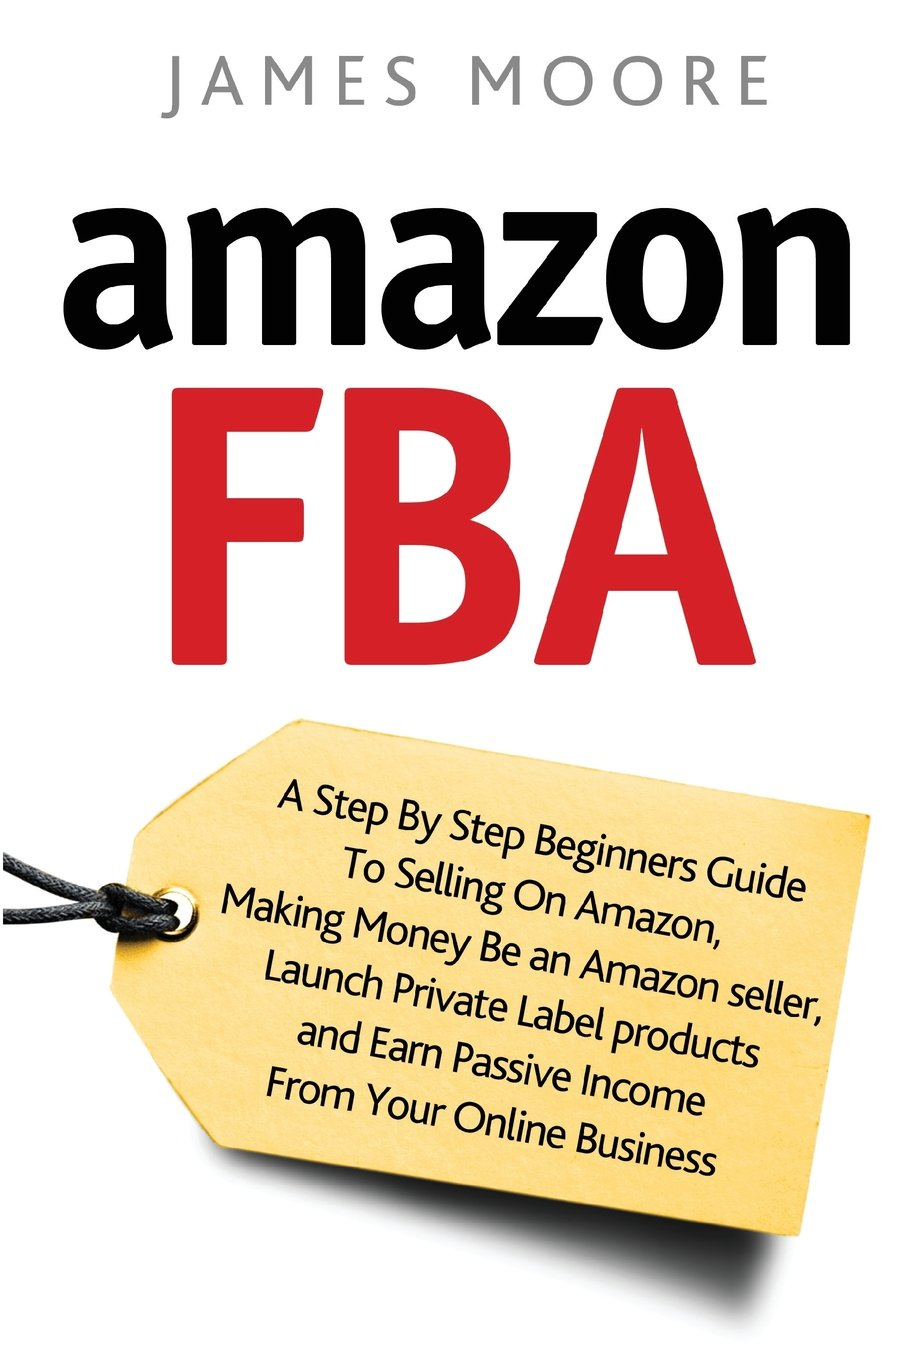 Download Amazon FBA: A Step by Step Beginner?s Guide To Selling on Amazon, Making Money, Be an Amazon Seller, Launch Private Label Products, and Earn Passive Income From Your Online Business pdf